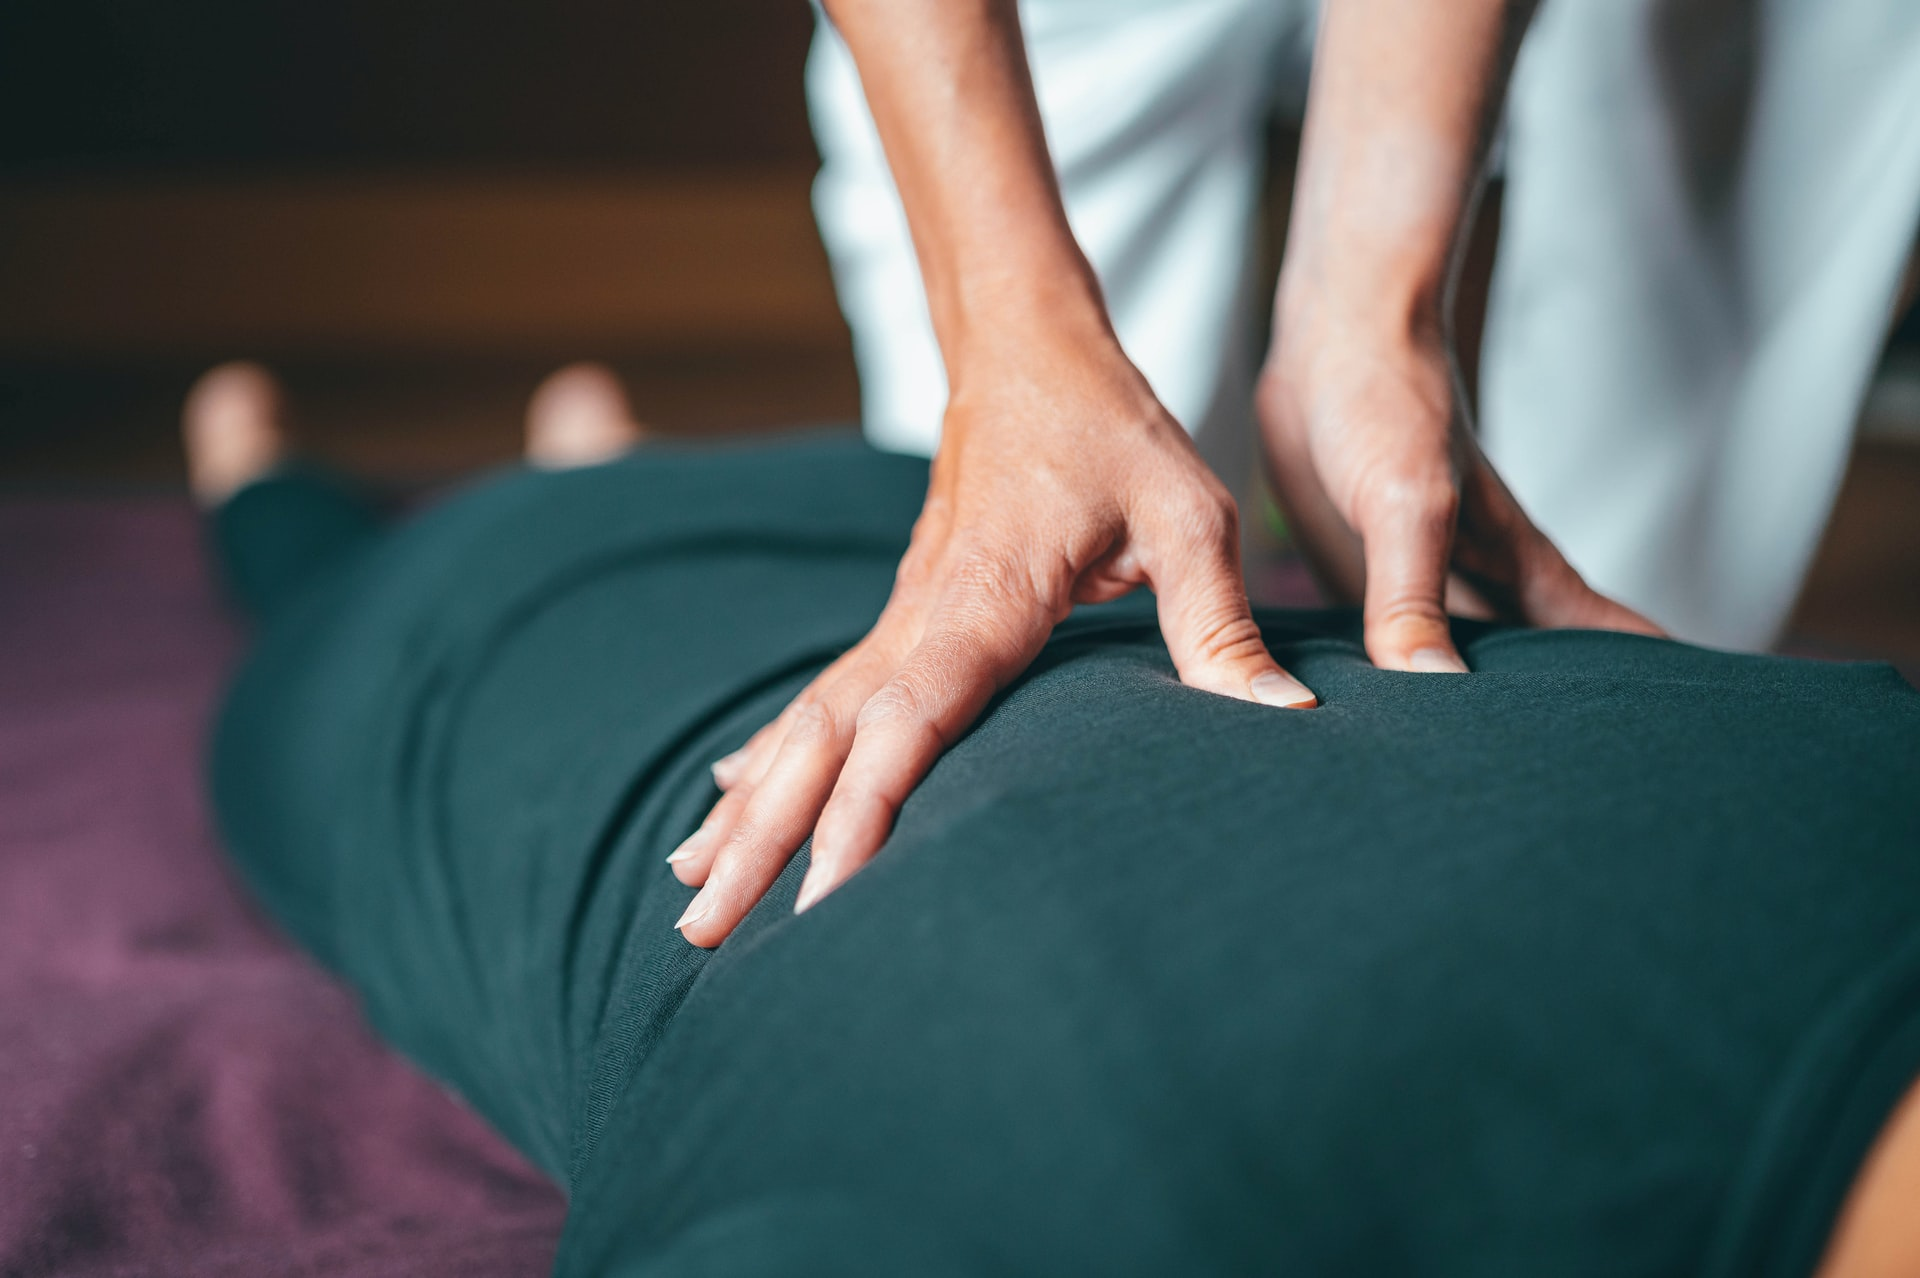 Spa employee giving client a massage on their upper back